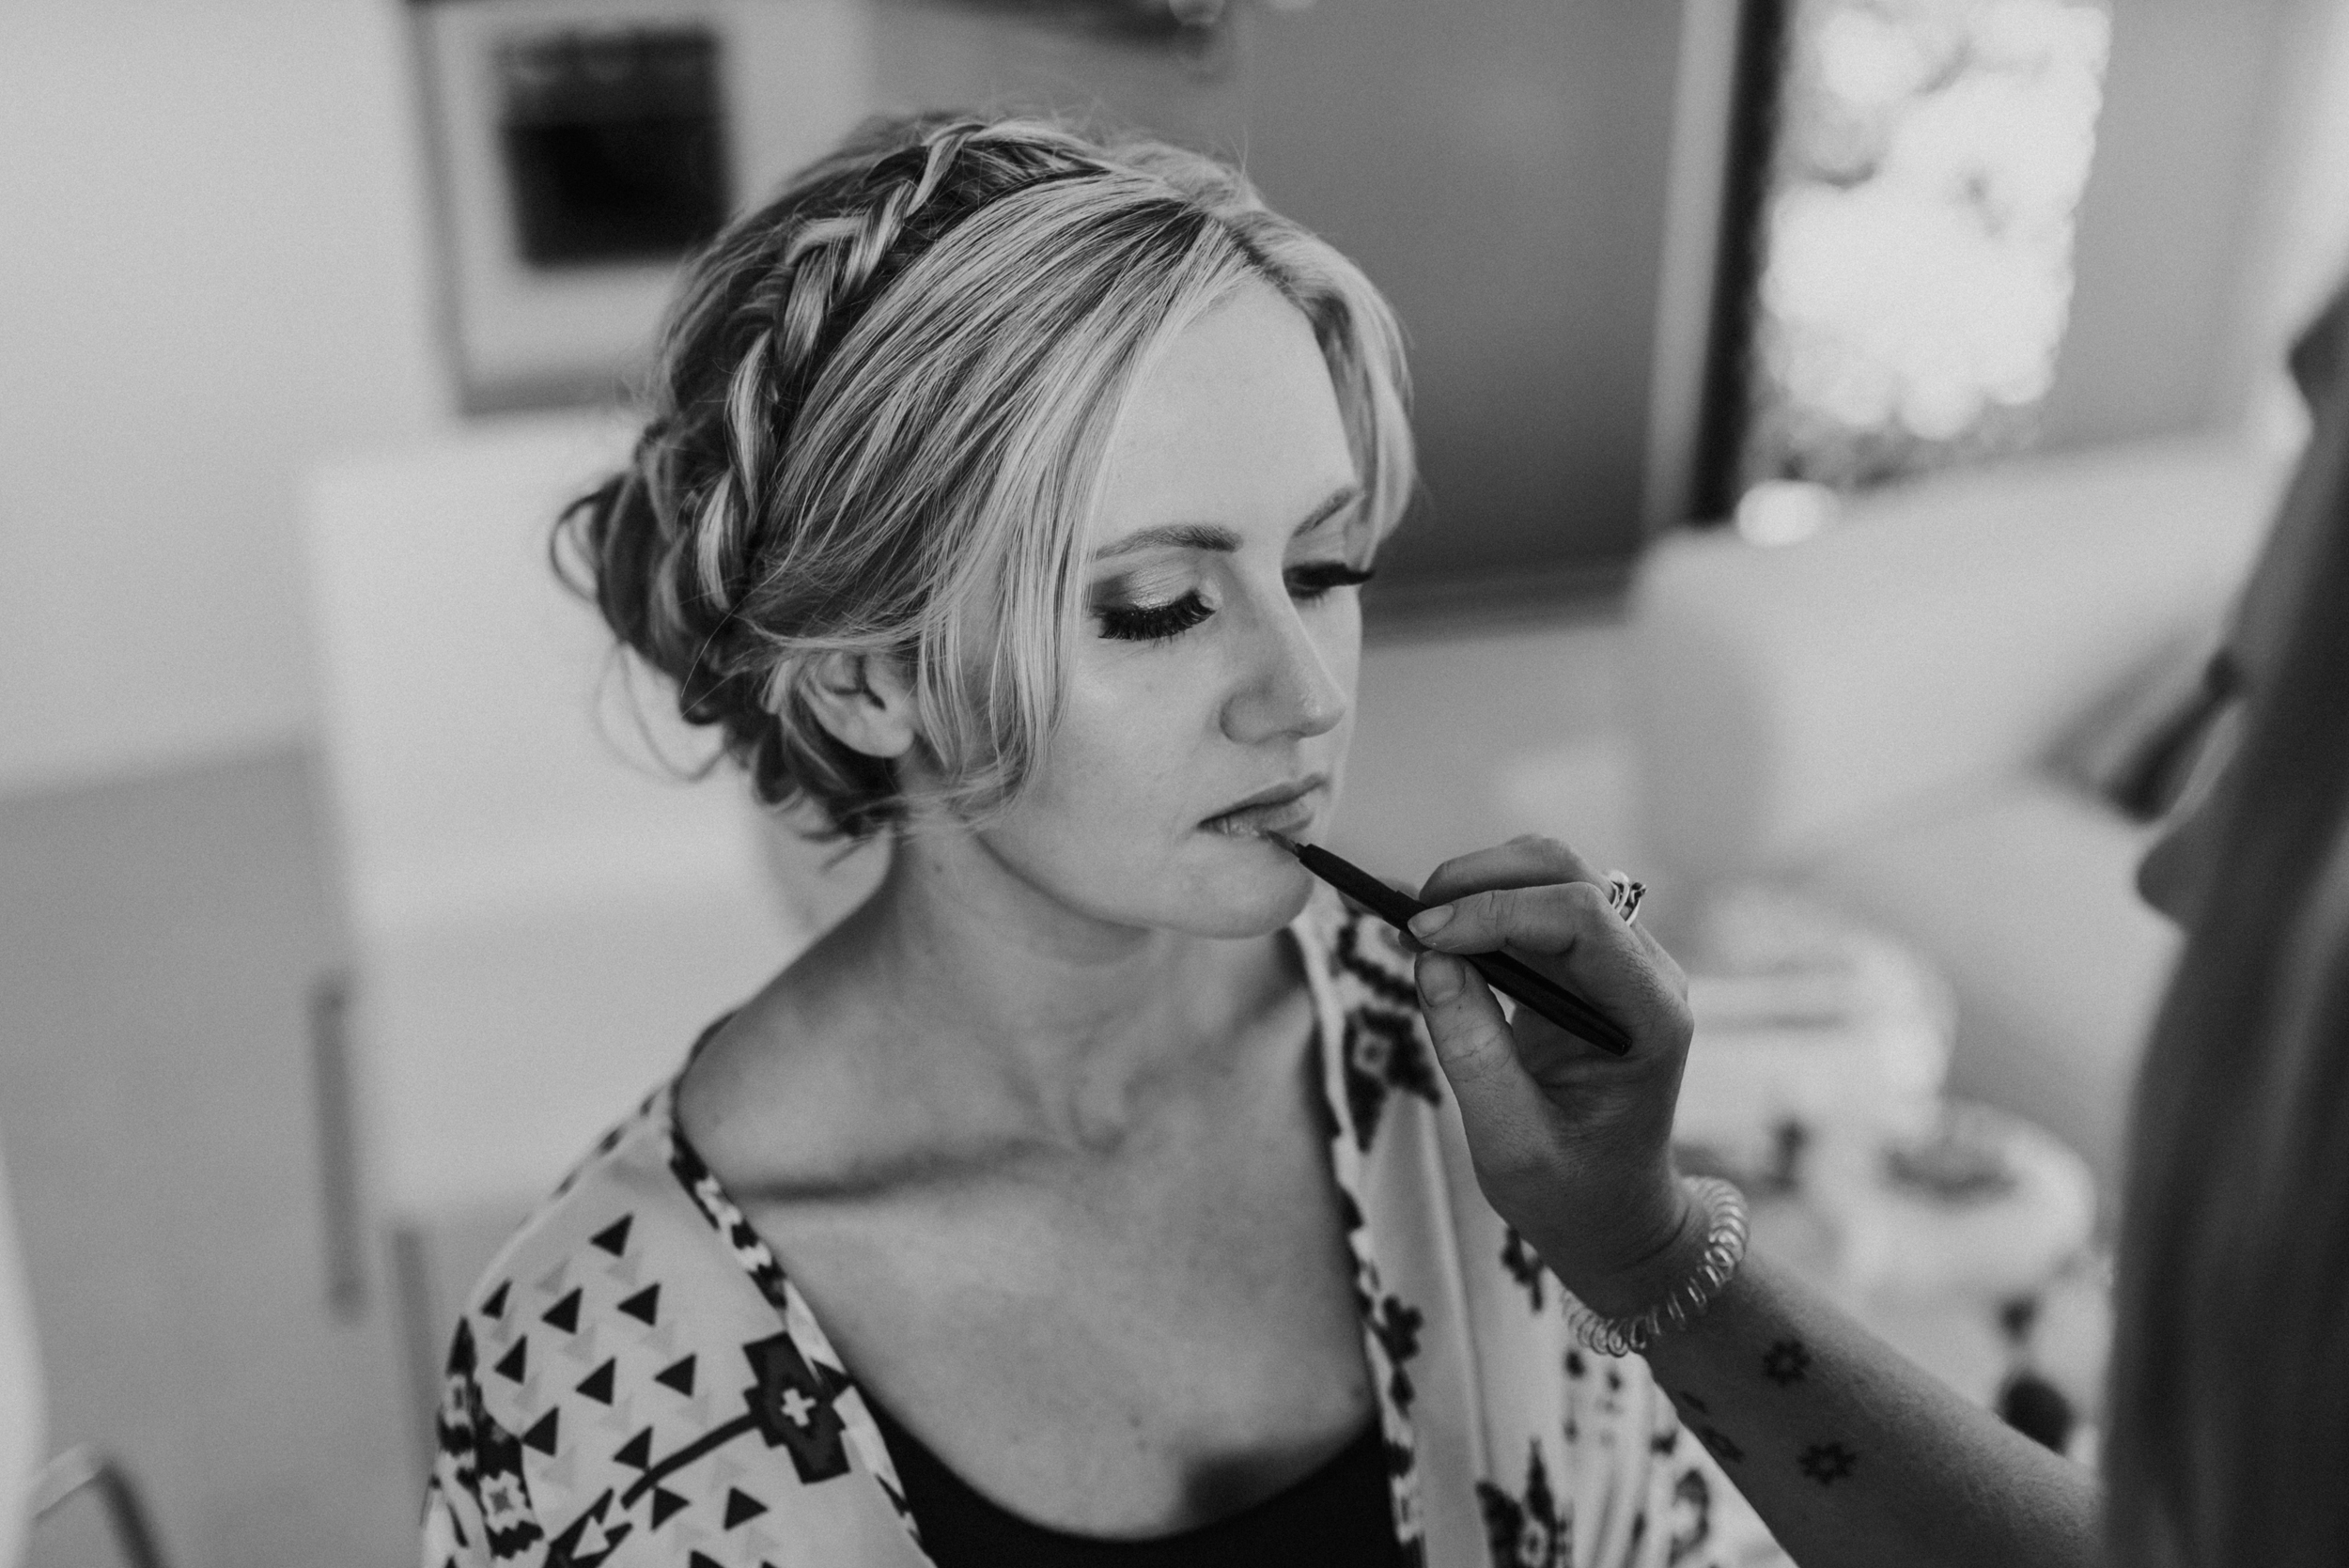 Makeup artist Newcastle